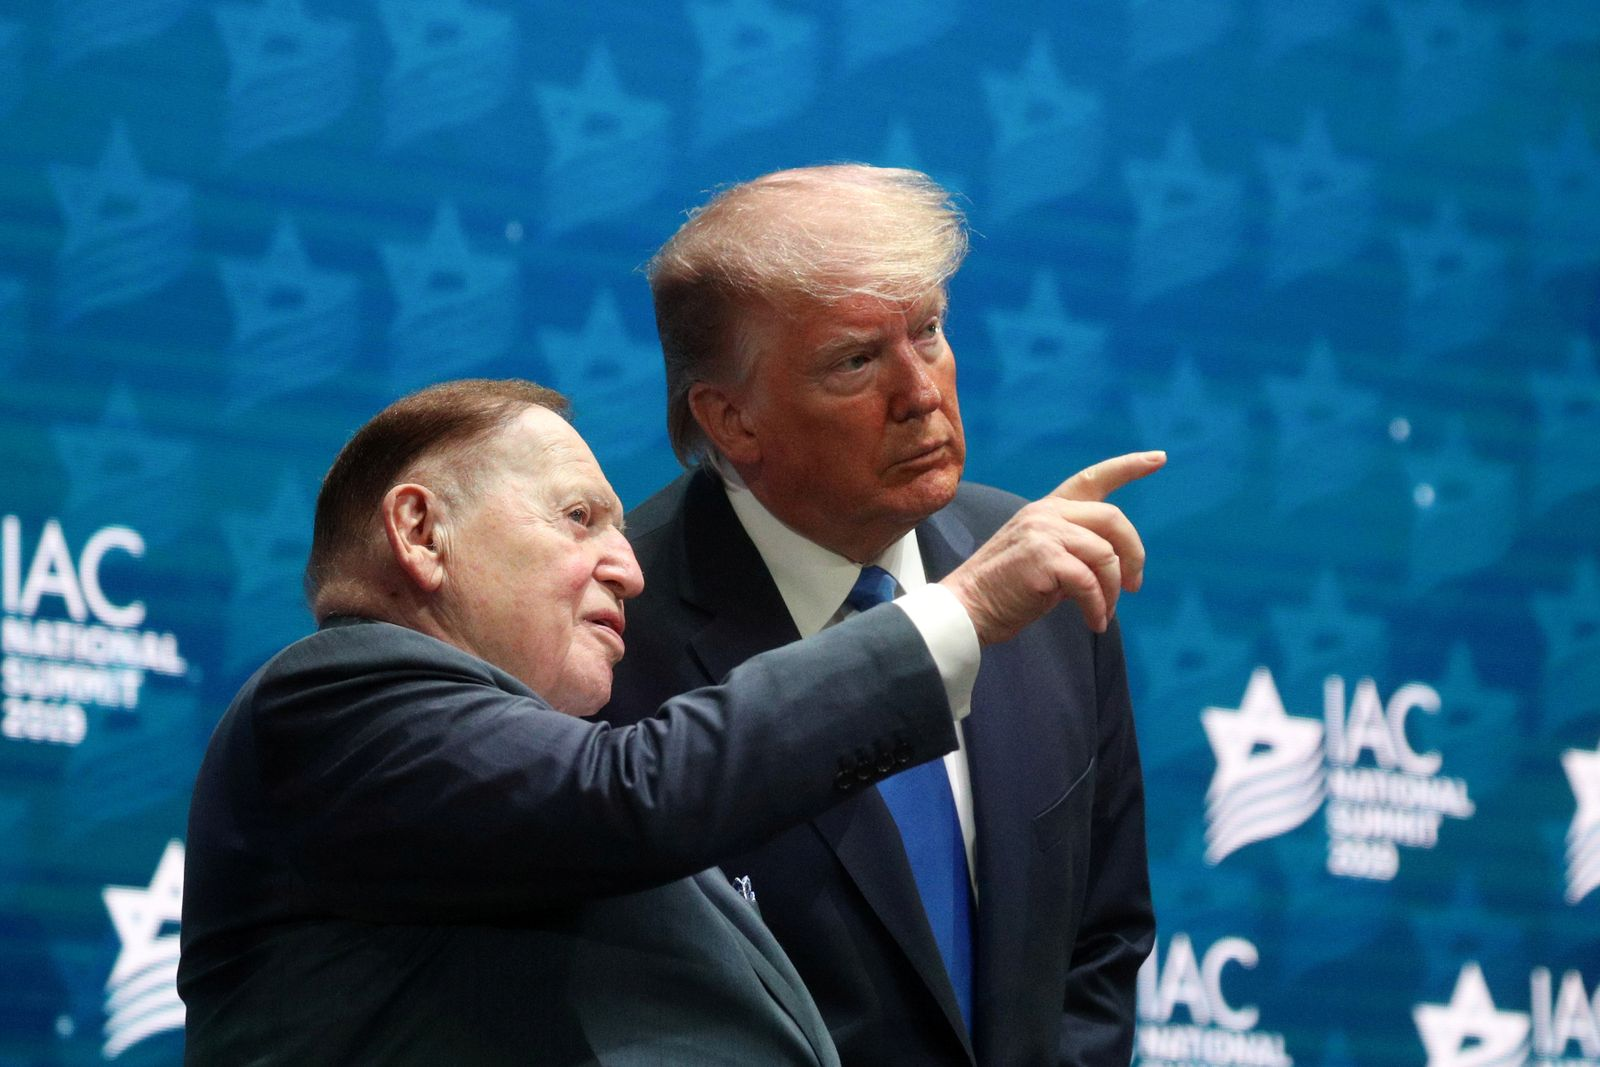 FILE PHOTO: U.S. President Trump stands on stage alongside Sheldon Adelson before delivering remarks in Hollywood, Florida